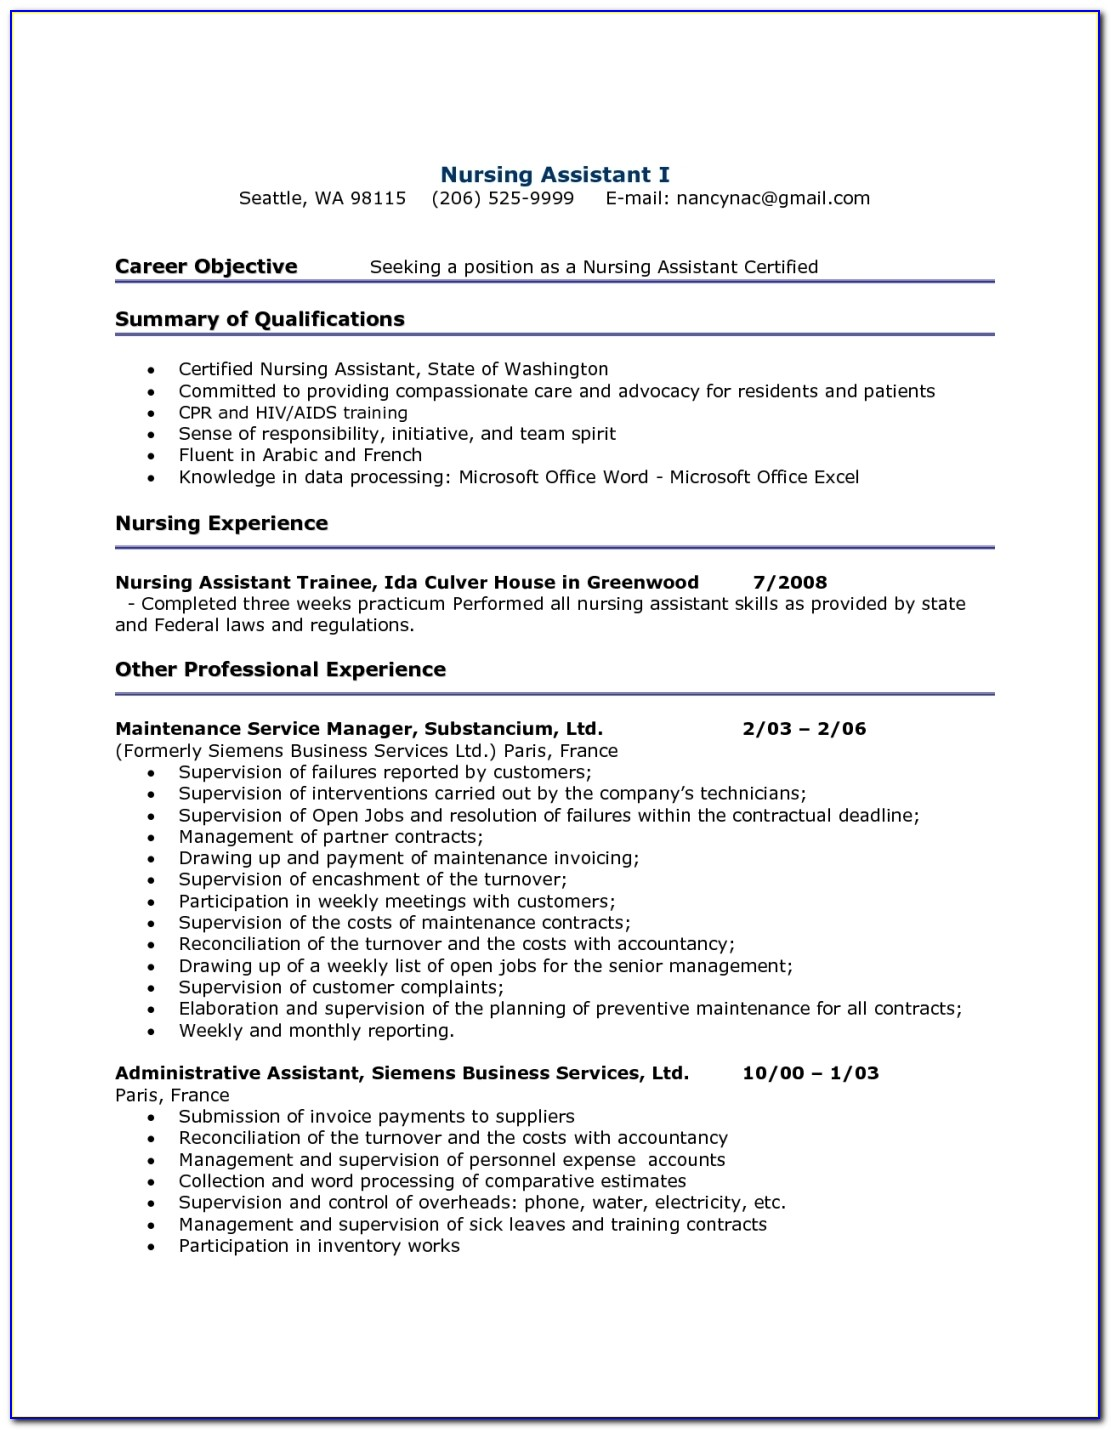 Cna Resume With No Experience | Best Business Template Regarding Cna Resume No Experience Template